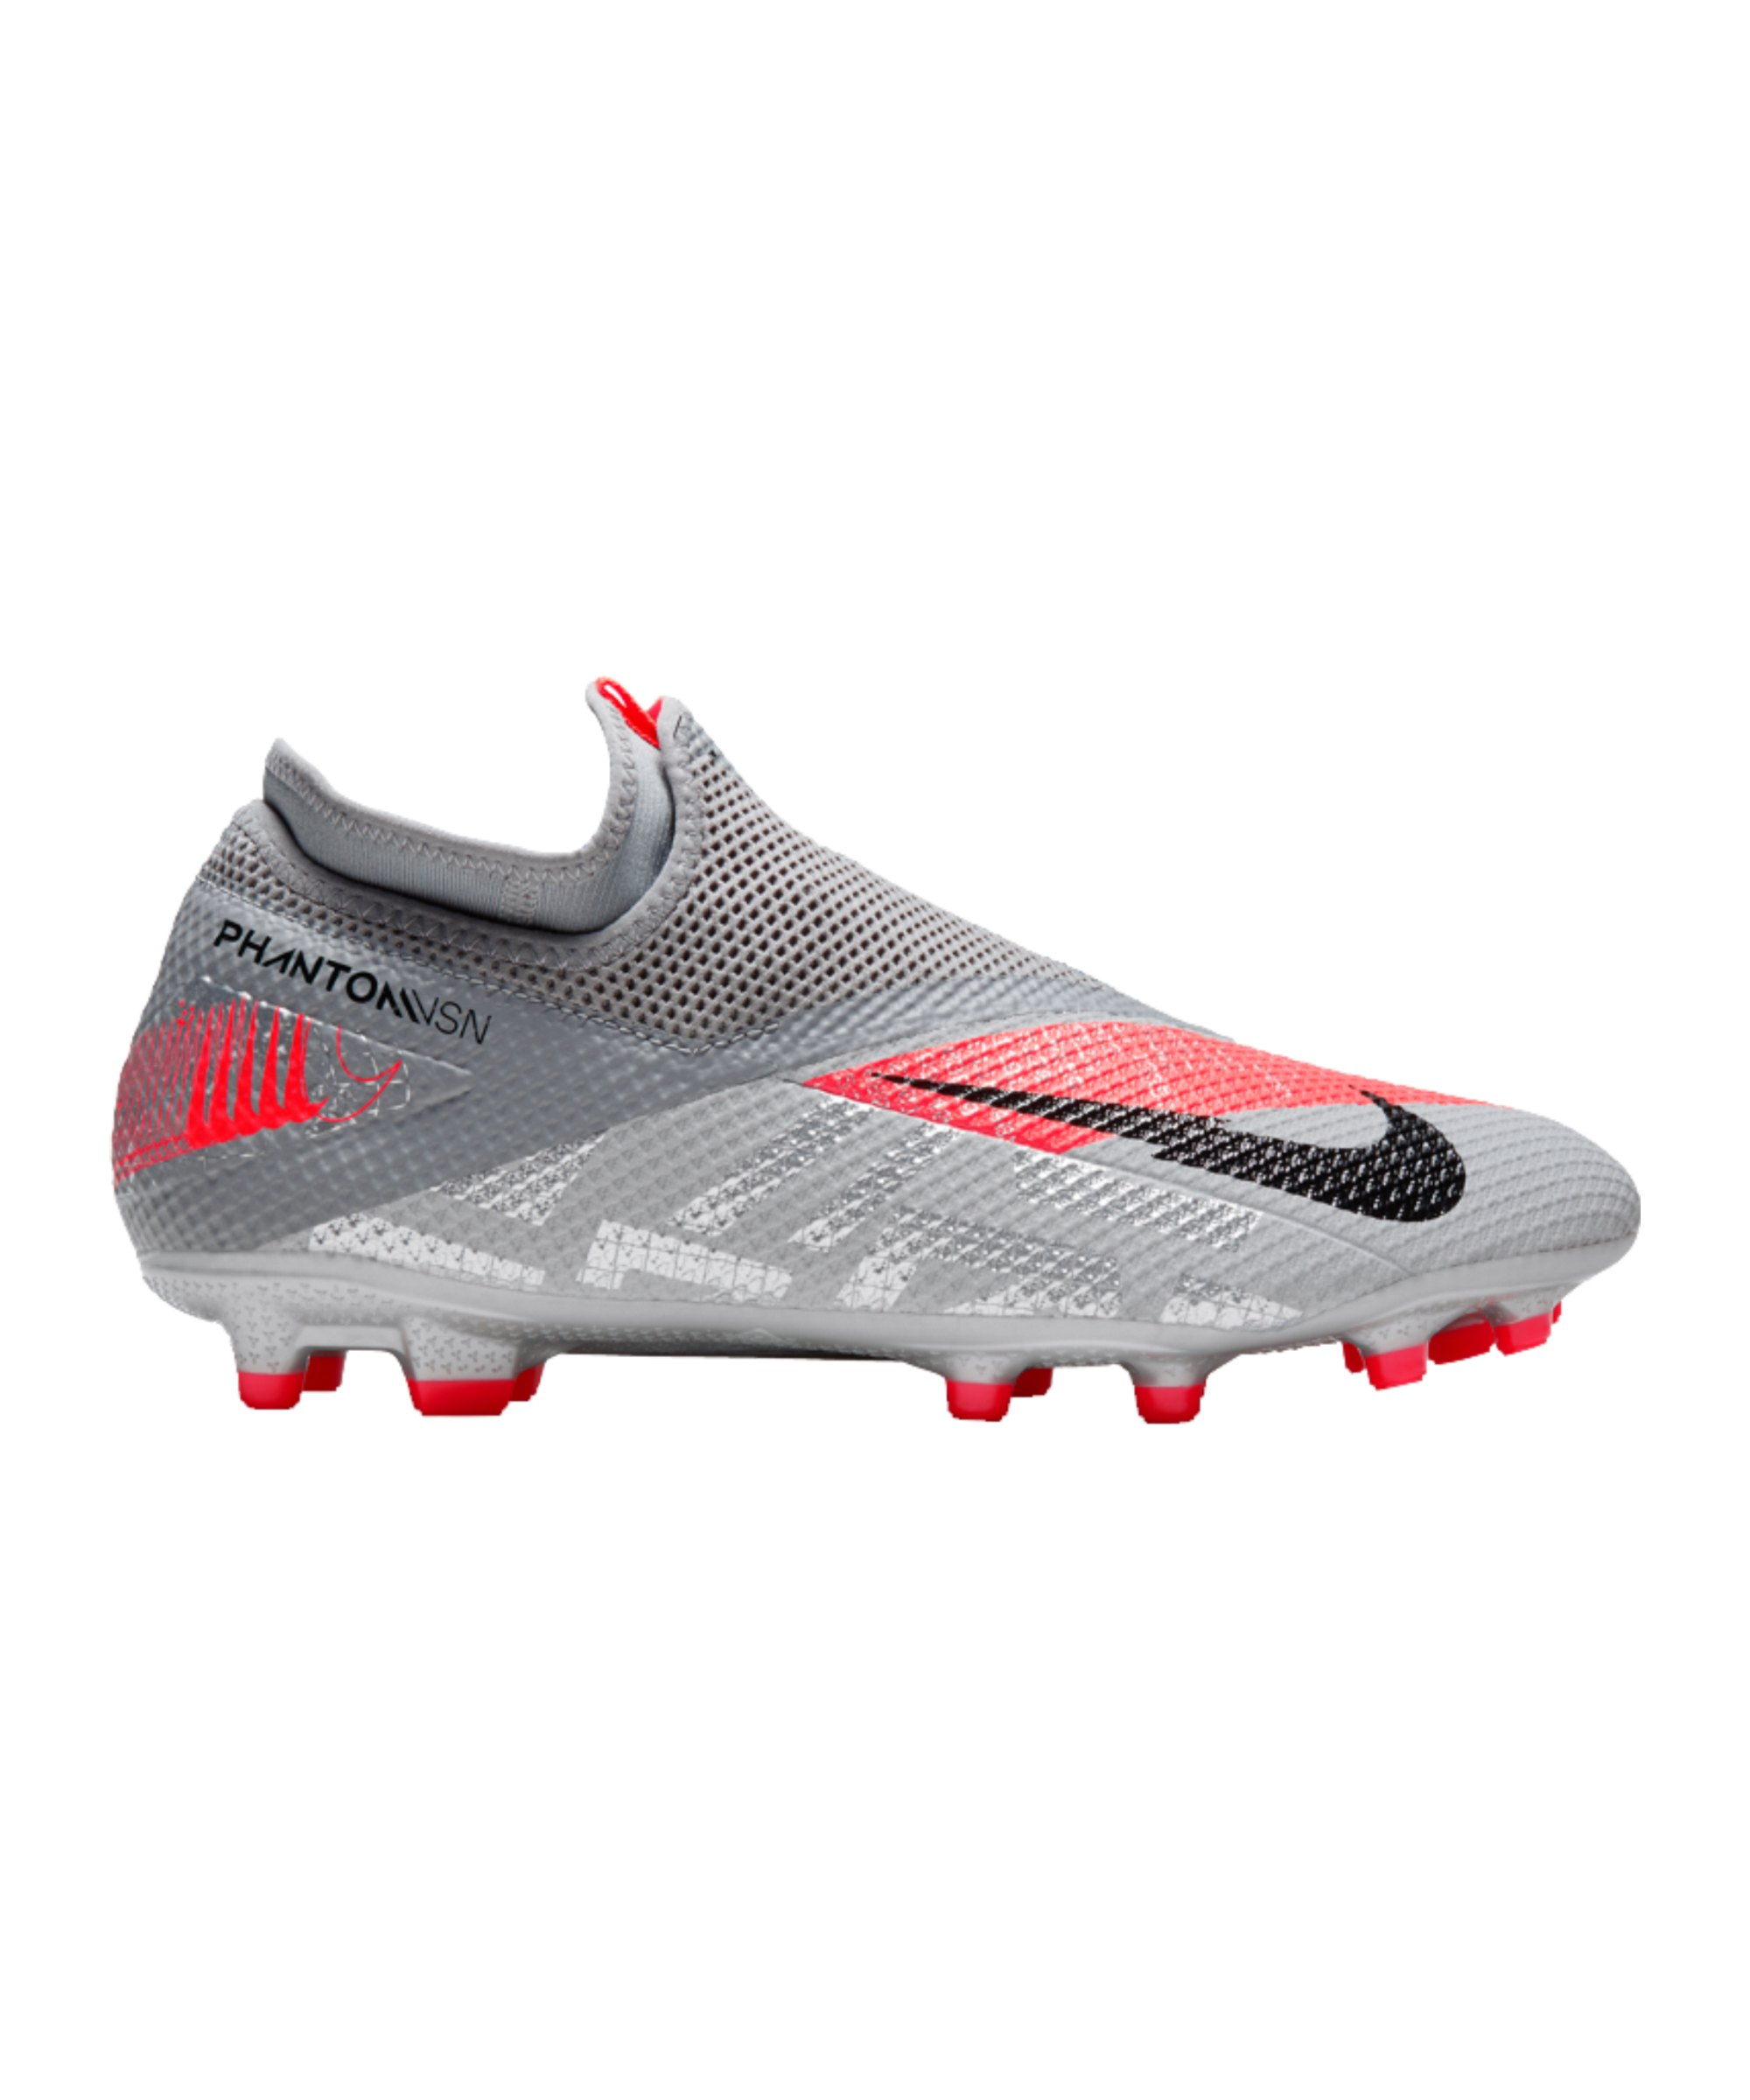 Nike Phantom Vision II Neighbourhood Academy DF MG Grau F906 - grau